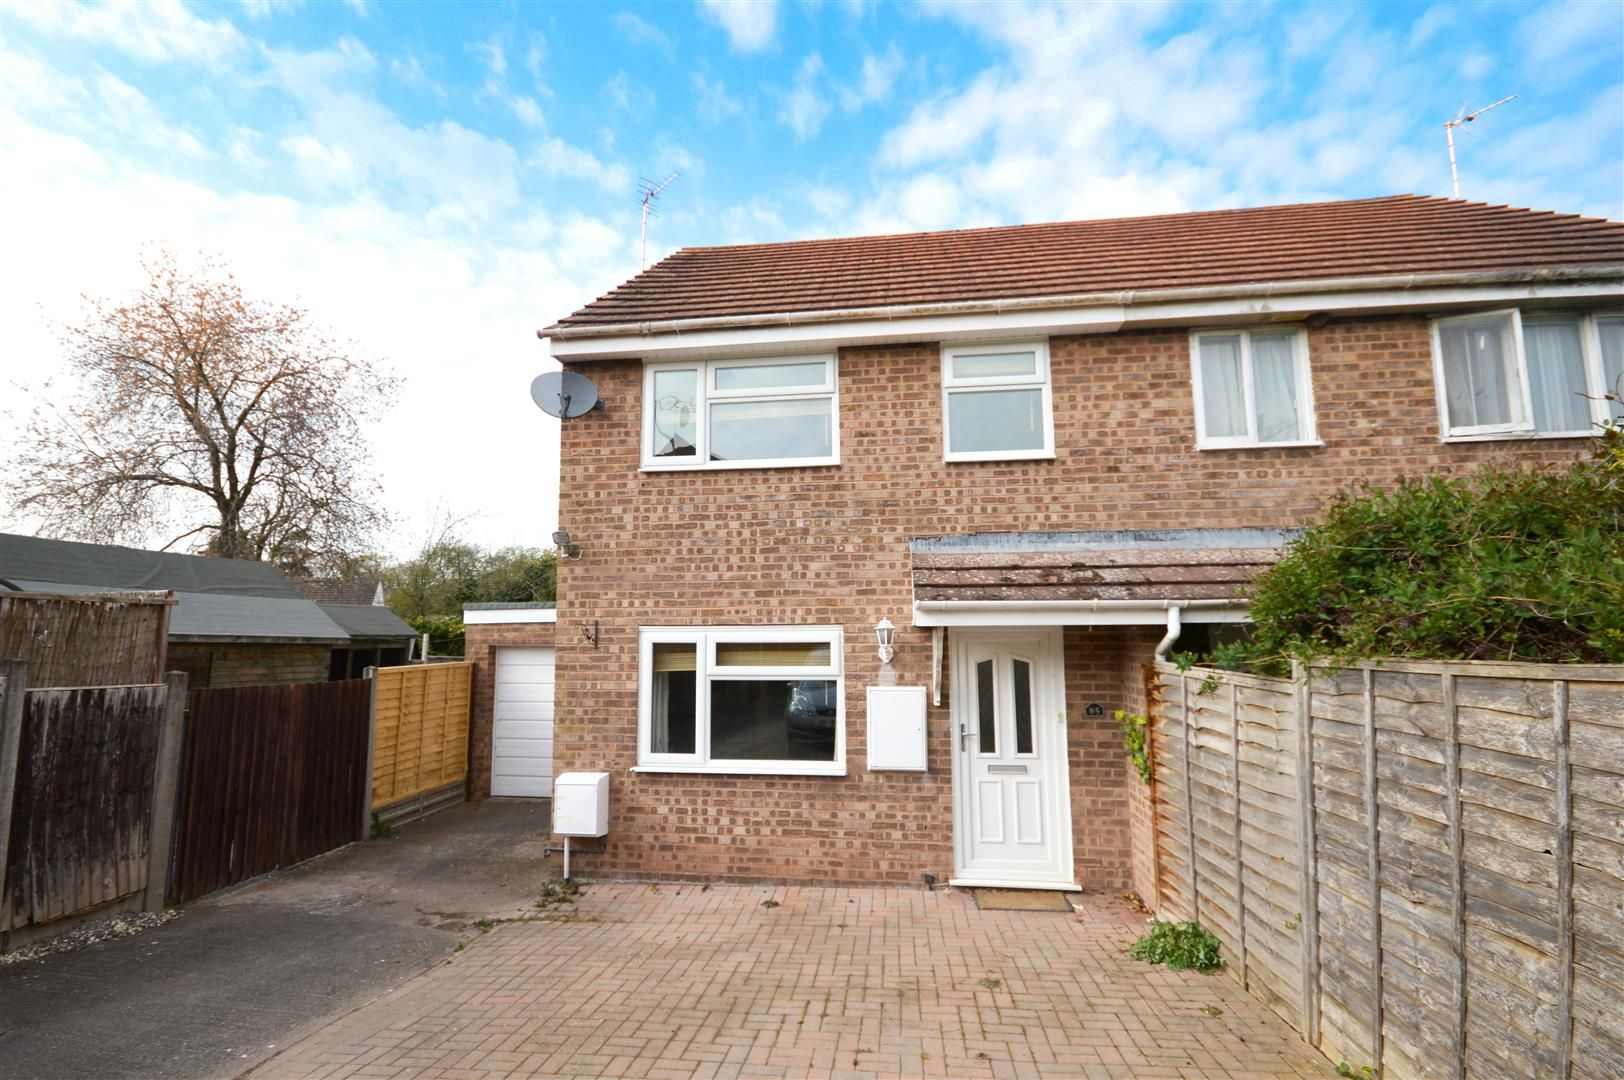 3 bed semi-detached for sale in Moreton-On-Lugg, HR4